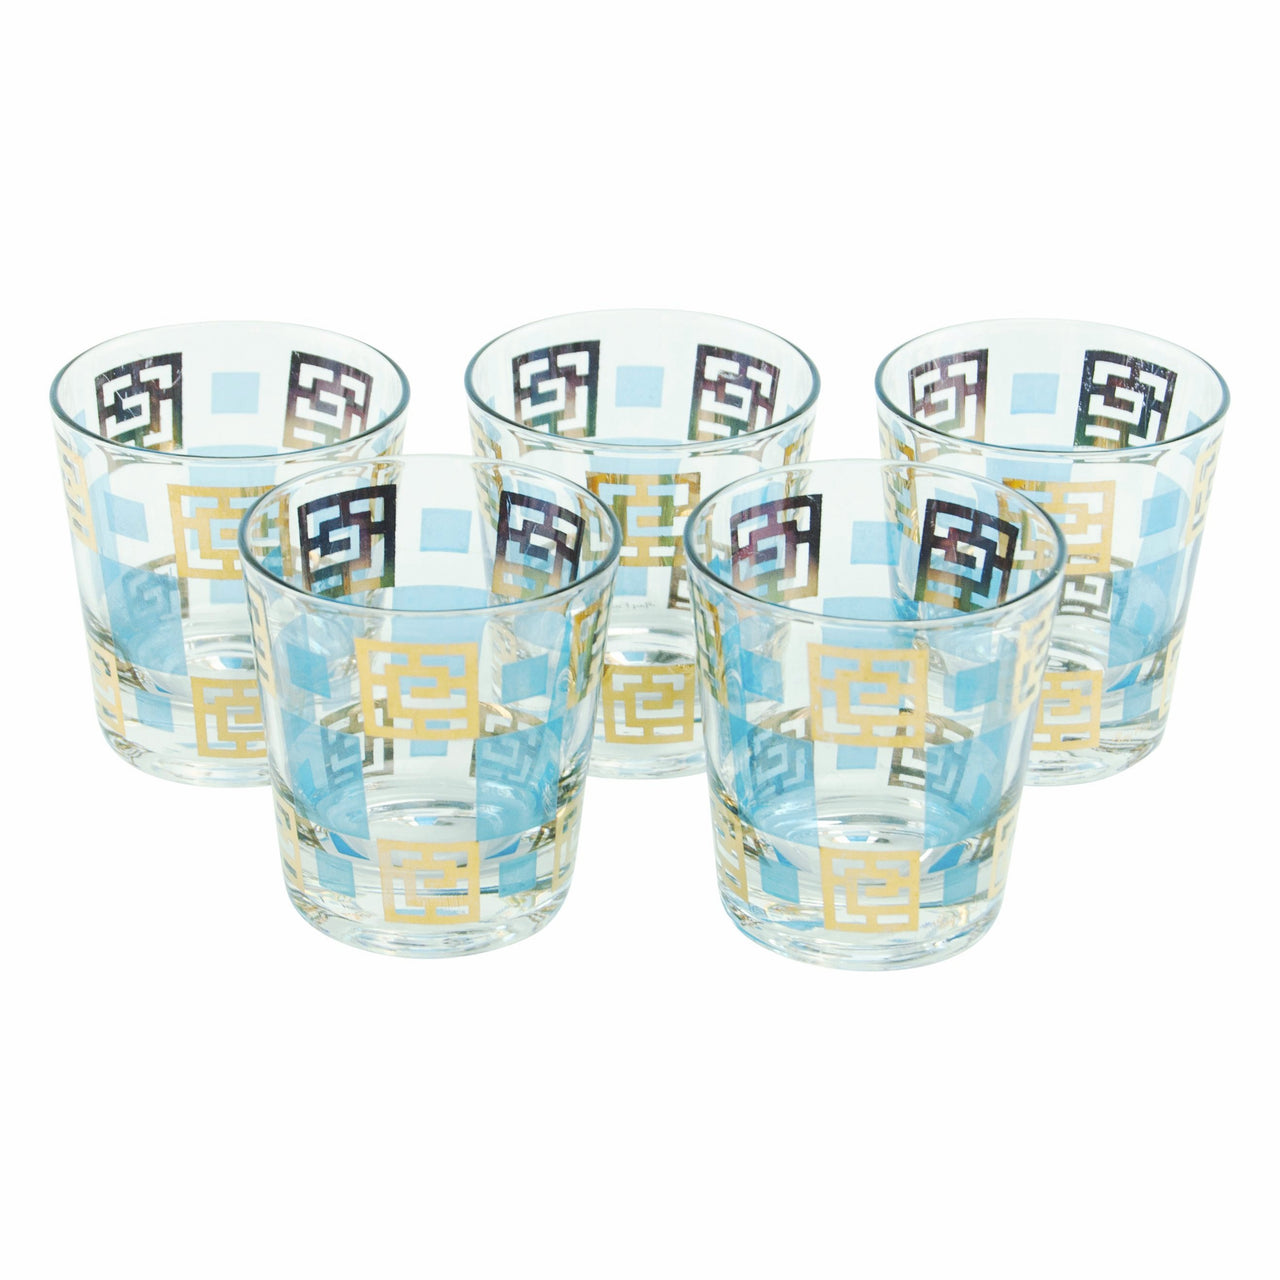 Gay Fad Gold & Blue Rocks Glasses | The Hour Shop Vintage